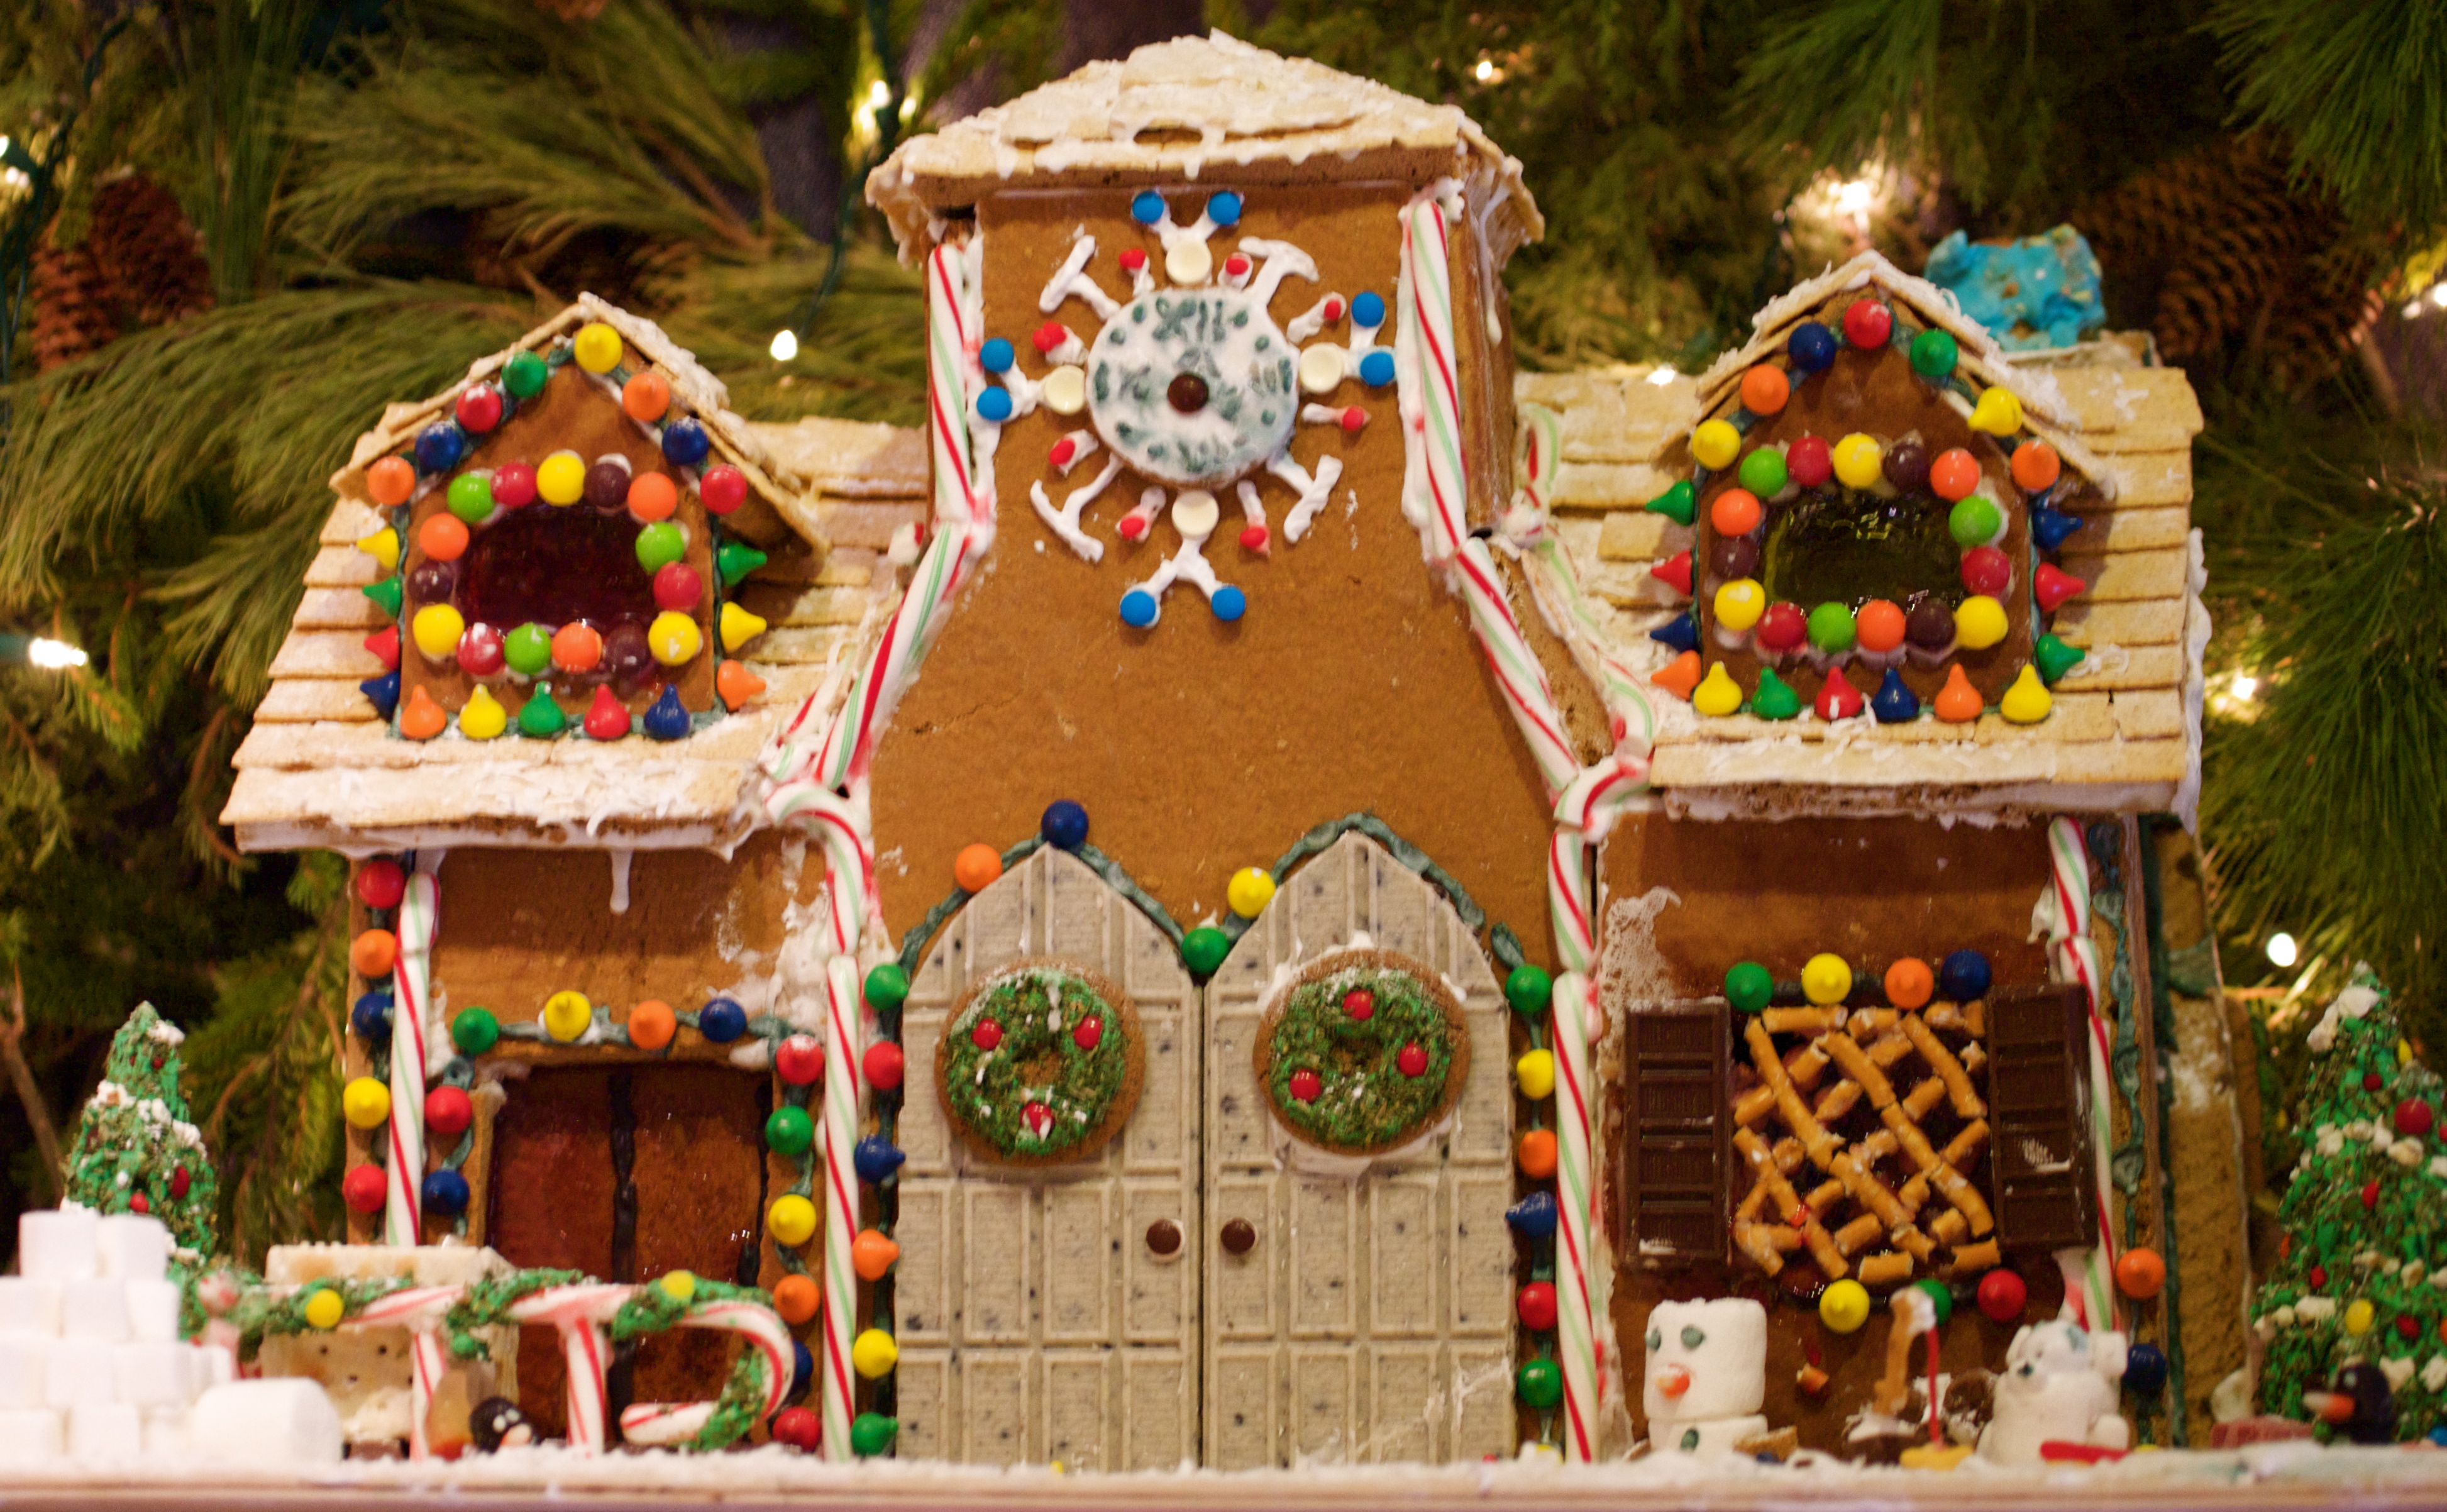 The Gingerbread House – Summary | The Heritage of Words